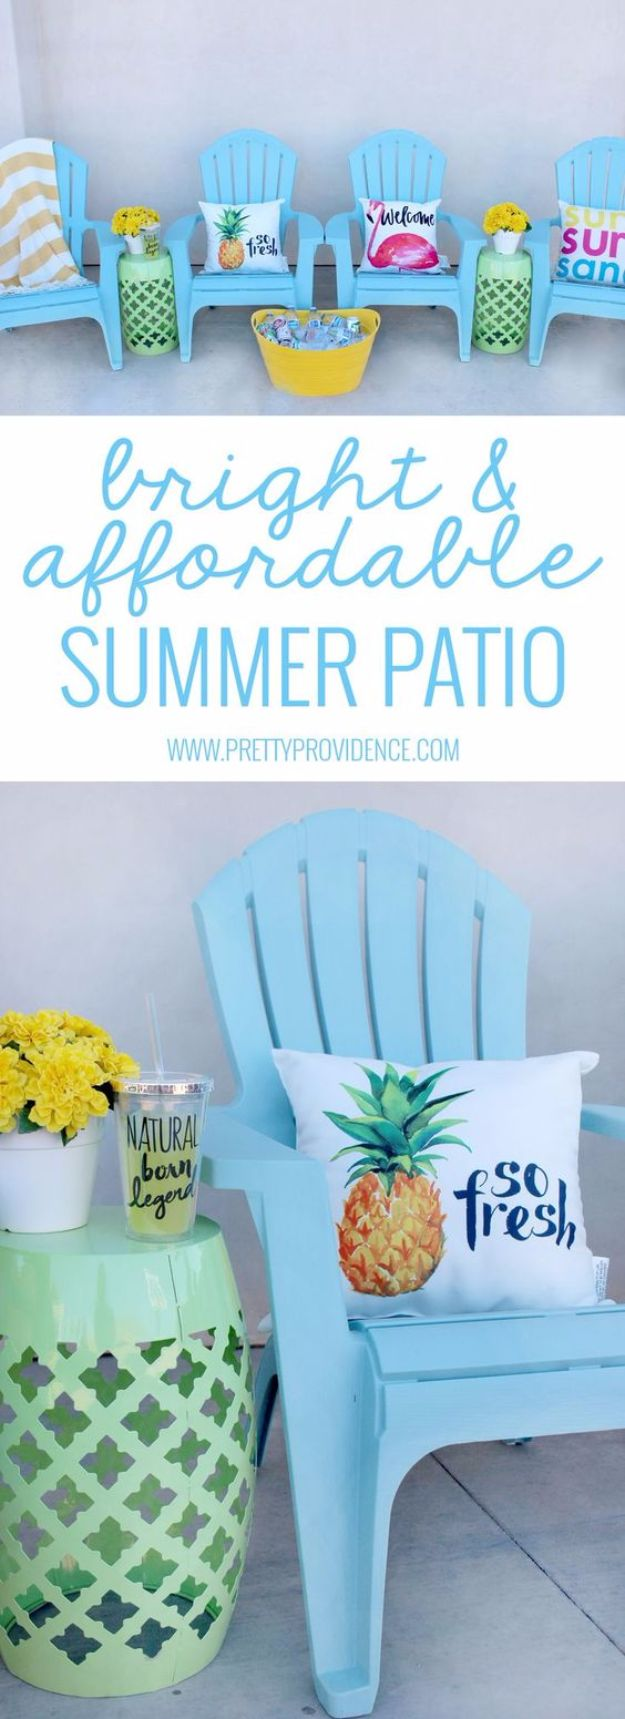 DIY Patio Furniture Ideas - Bright Summer Patio Chairs - Cheap Do It Yourself Porch and Easy Backyard Furniture, Rocking Chairs, Swings, Benches, Stools and Seating Tutorials - Dining Tables from Pallets, Cinder Blocks and Upcyle Ideas - Sectional Couch Plans With Cushions - Makeover Tips for Existing Furniture #diyideas #outdoors #diy #backyardideas #diyfurniture #patio #diyjoy http://diyjoy.com/diy-patio-furniture-ideas